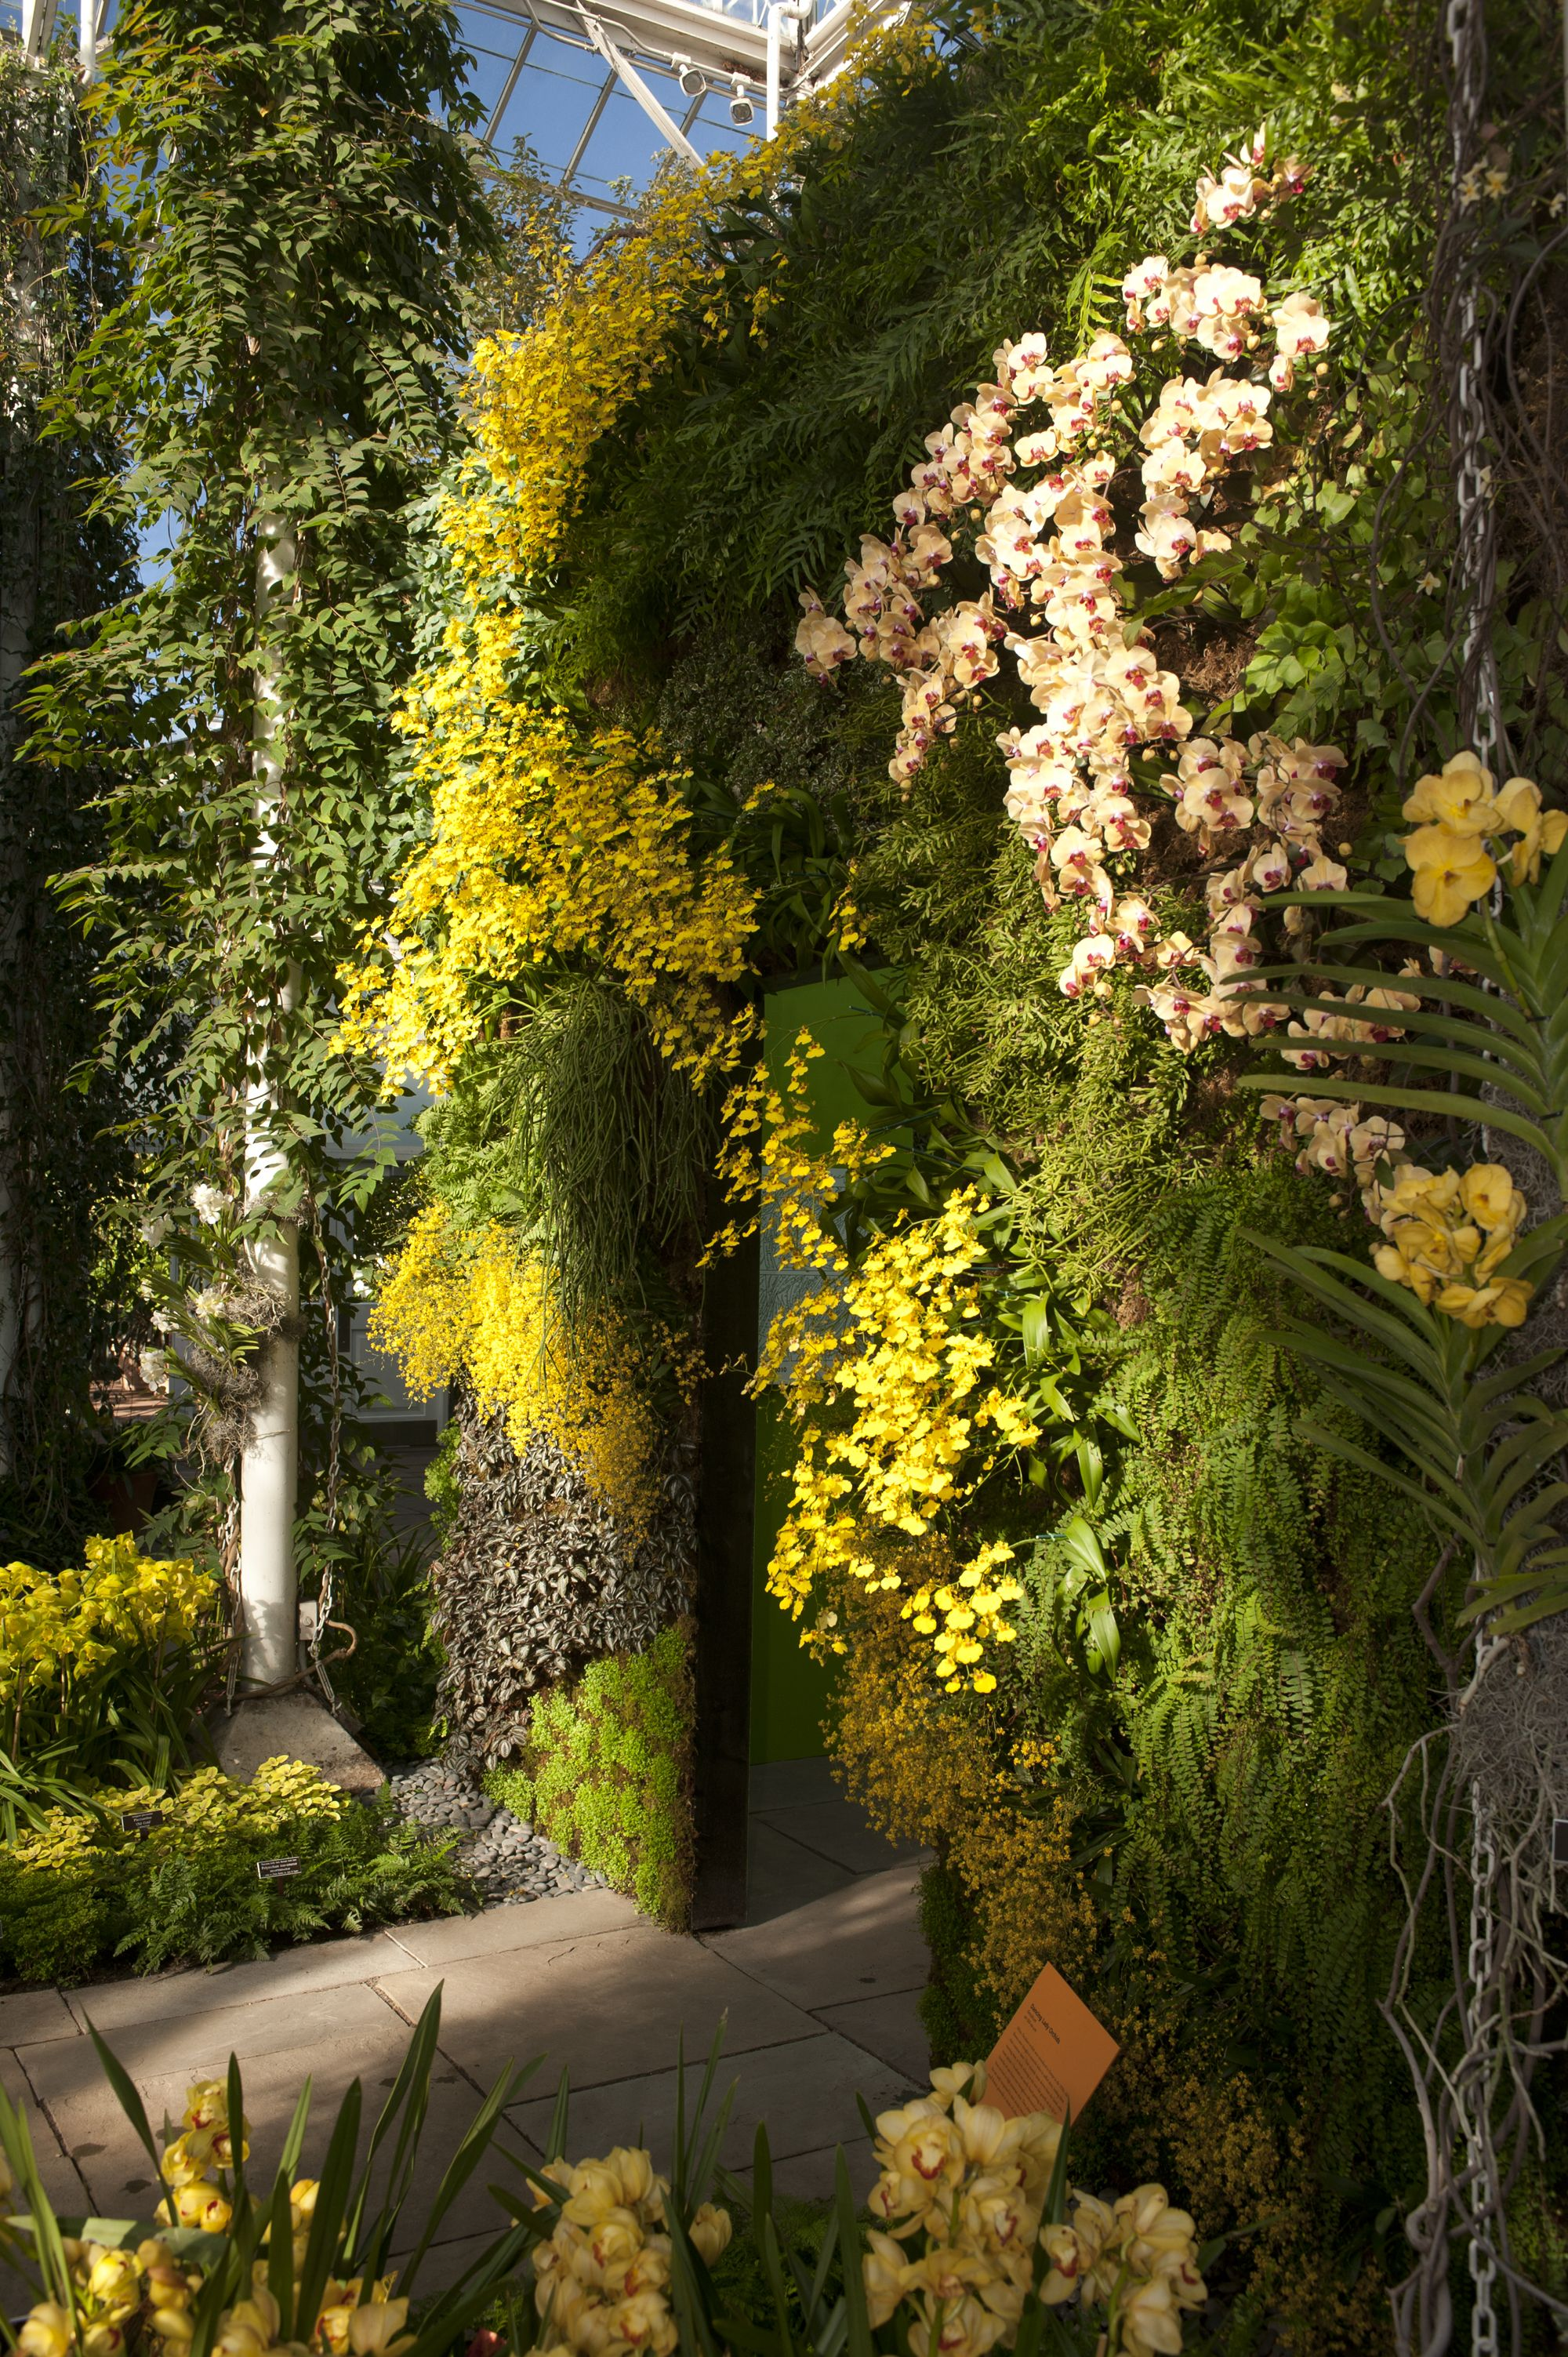 The 10th Annual Orchid Show | Gardens | Pinterest | Orchid and Plants